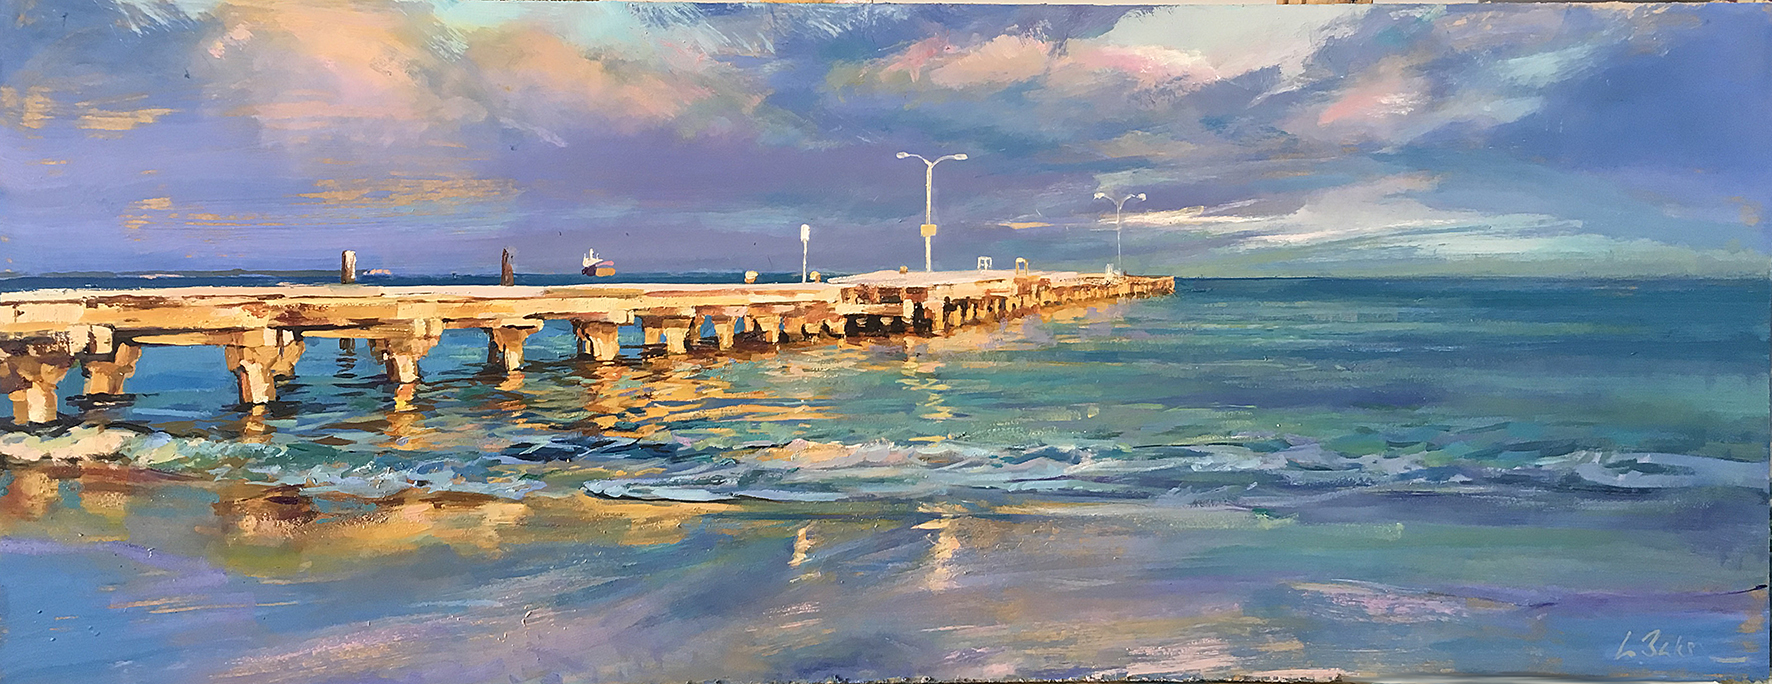 Greg Baker - First Light on Woodman Point Jetty (oil on board, 35 x 60 cms)